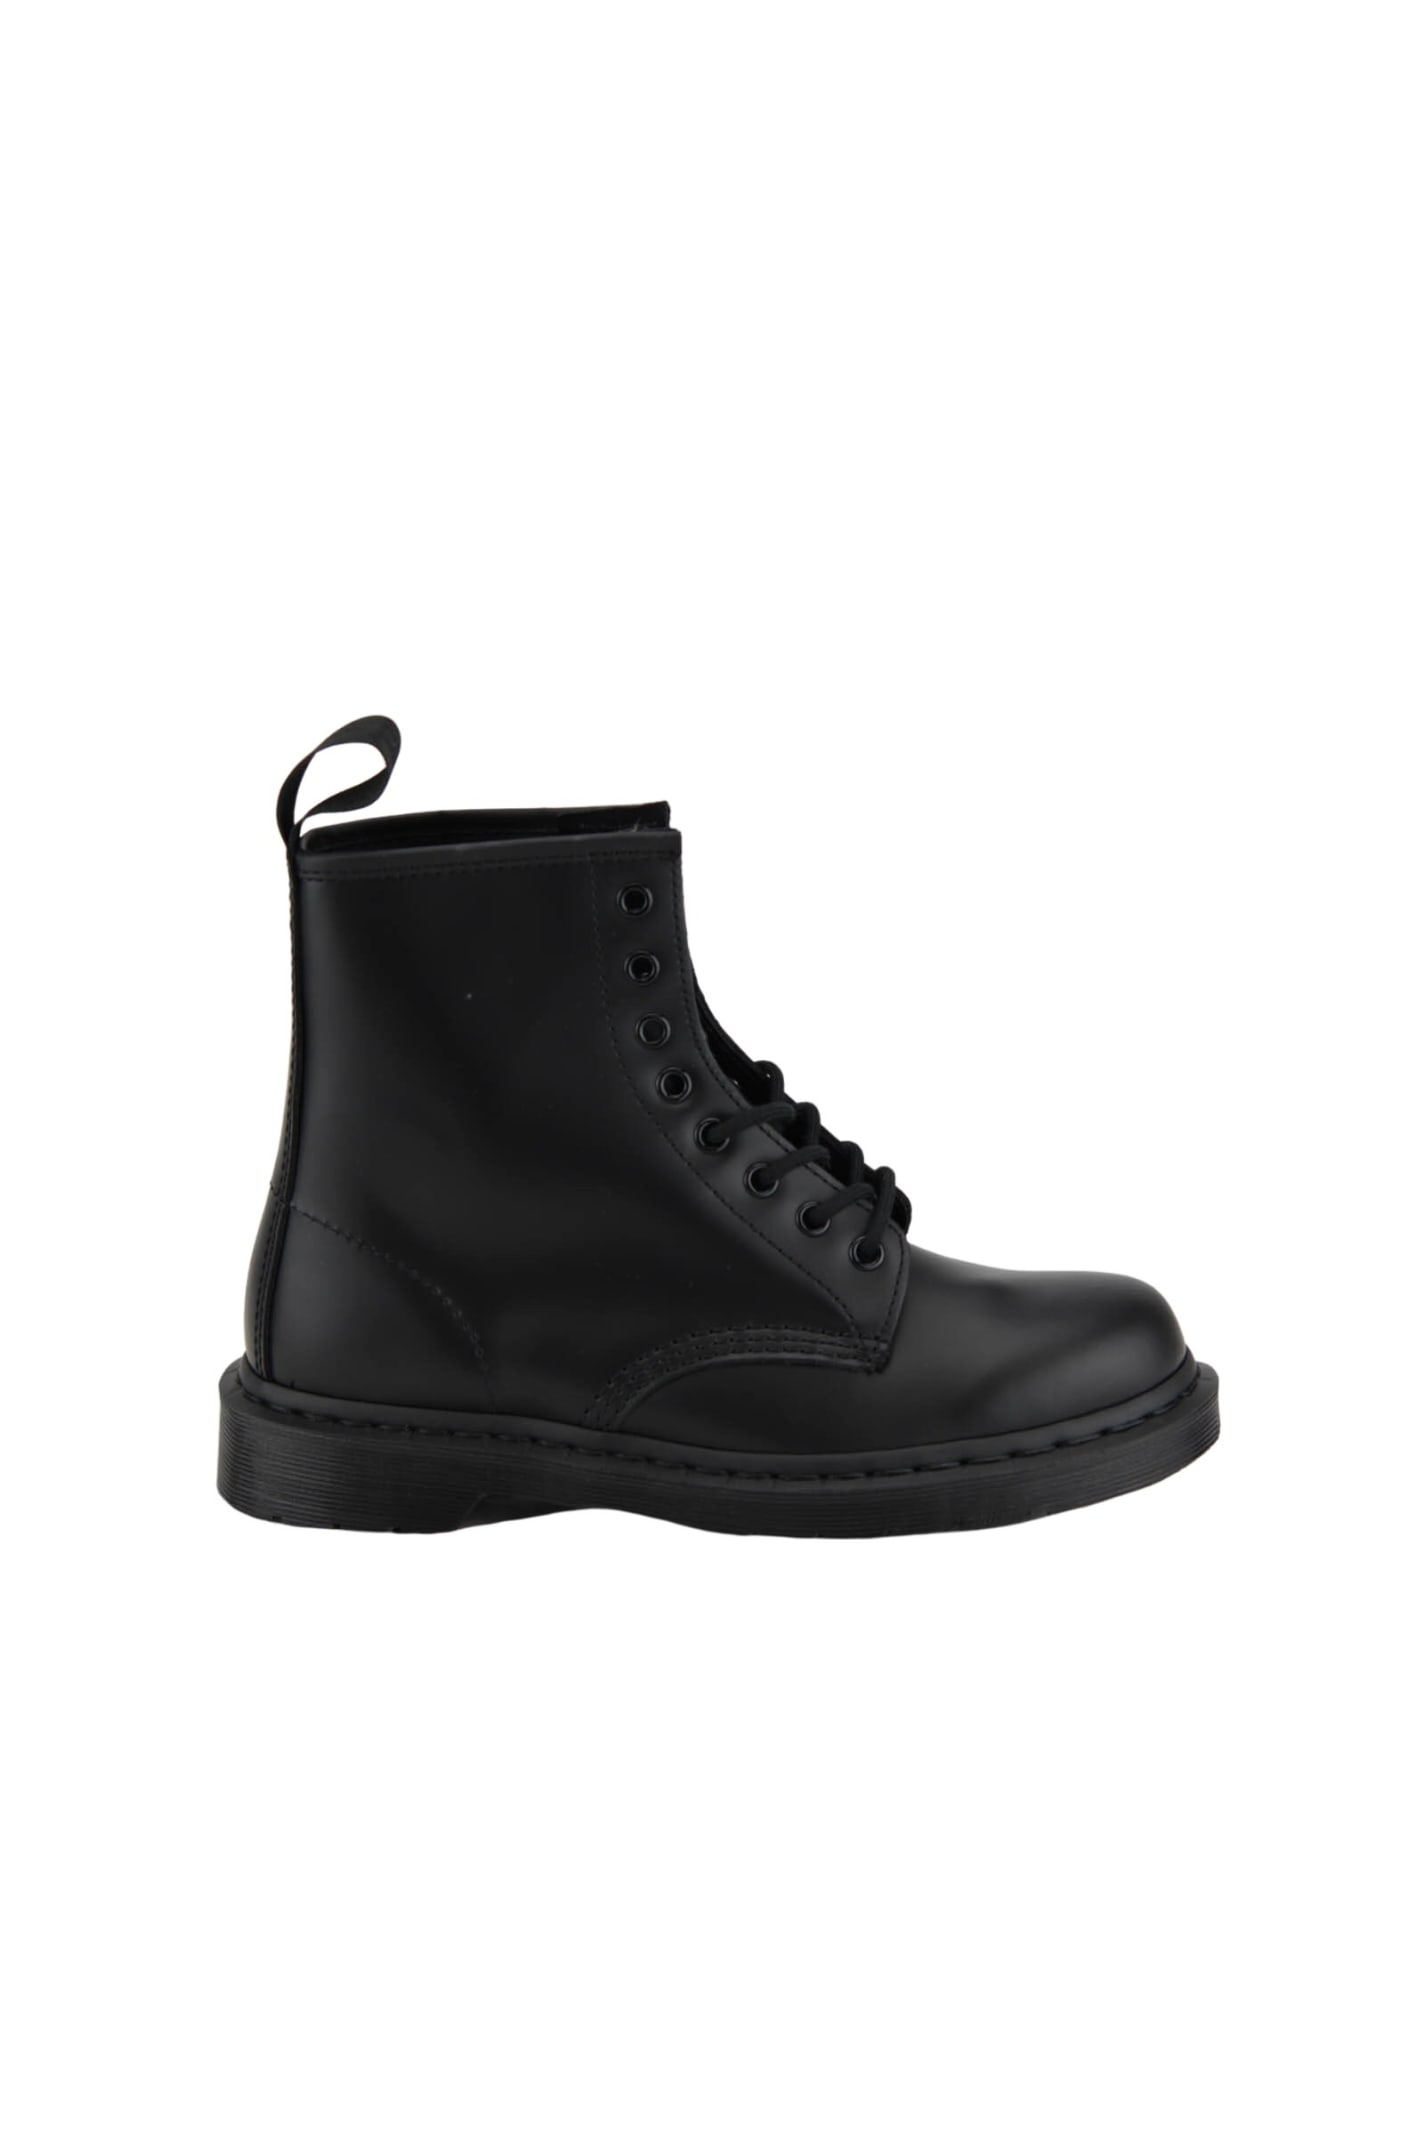 Buy Dr. Martens Shoes online, shop Dr. Martens shoes with free shipping